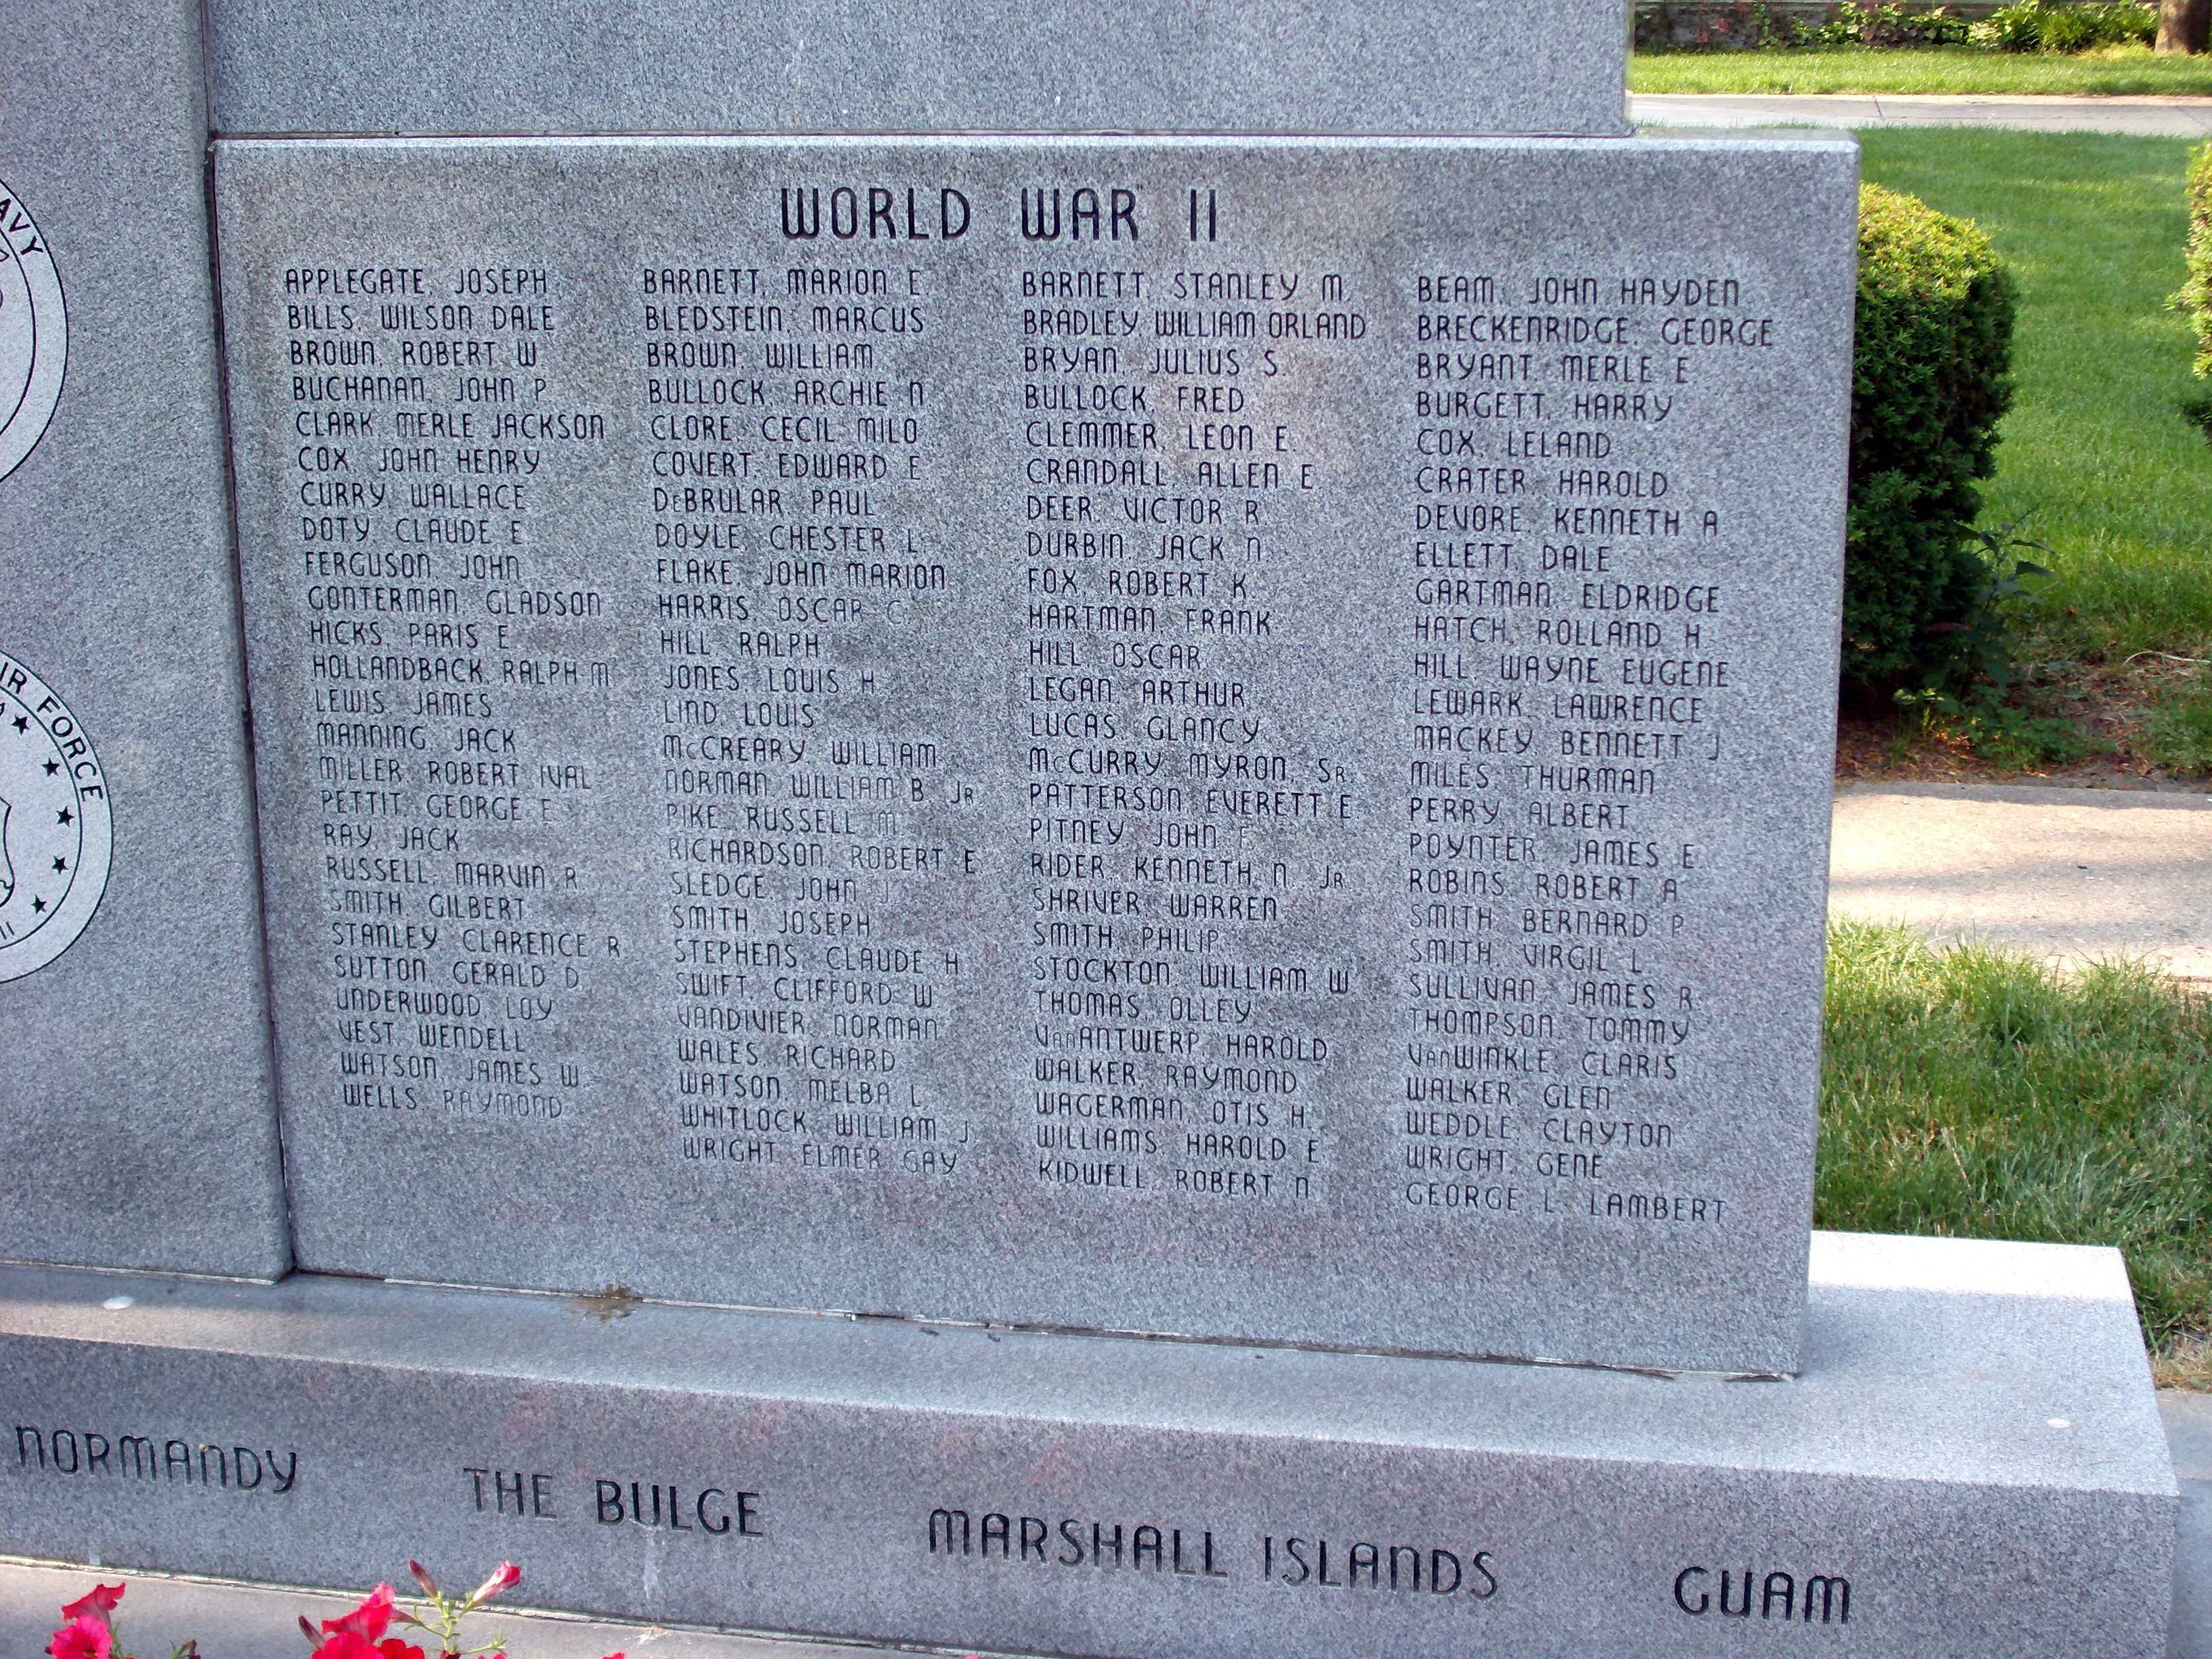 Right Lower Section - - Johnson County War Memorial Honor Rolls Marker